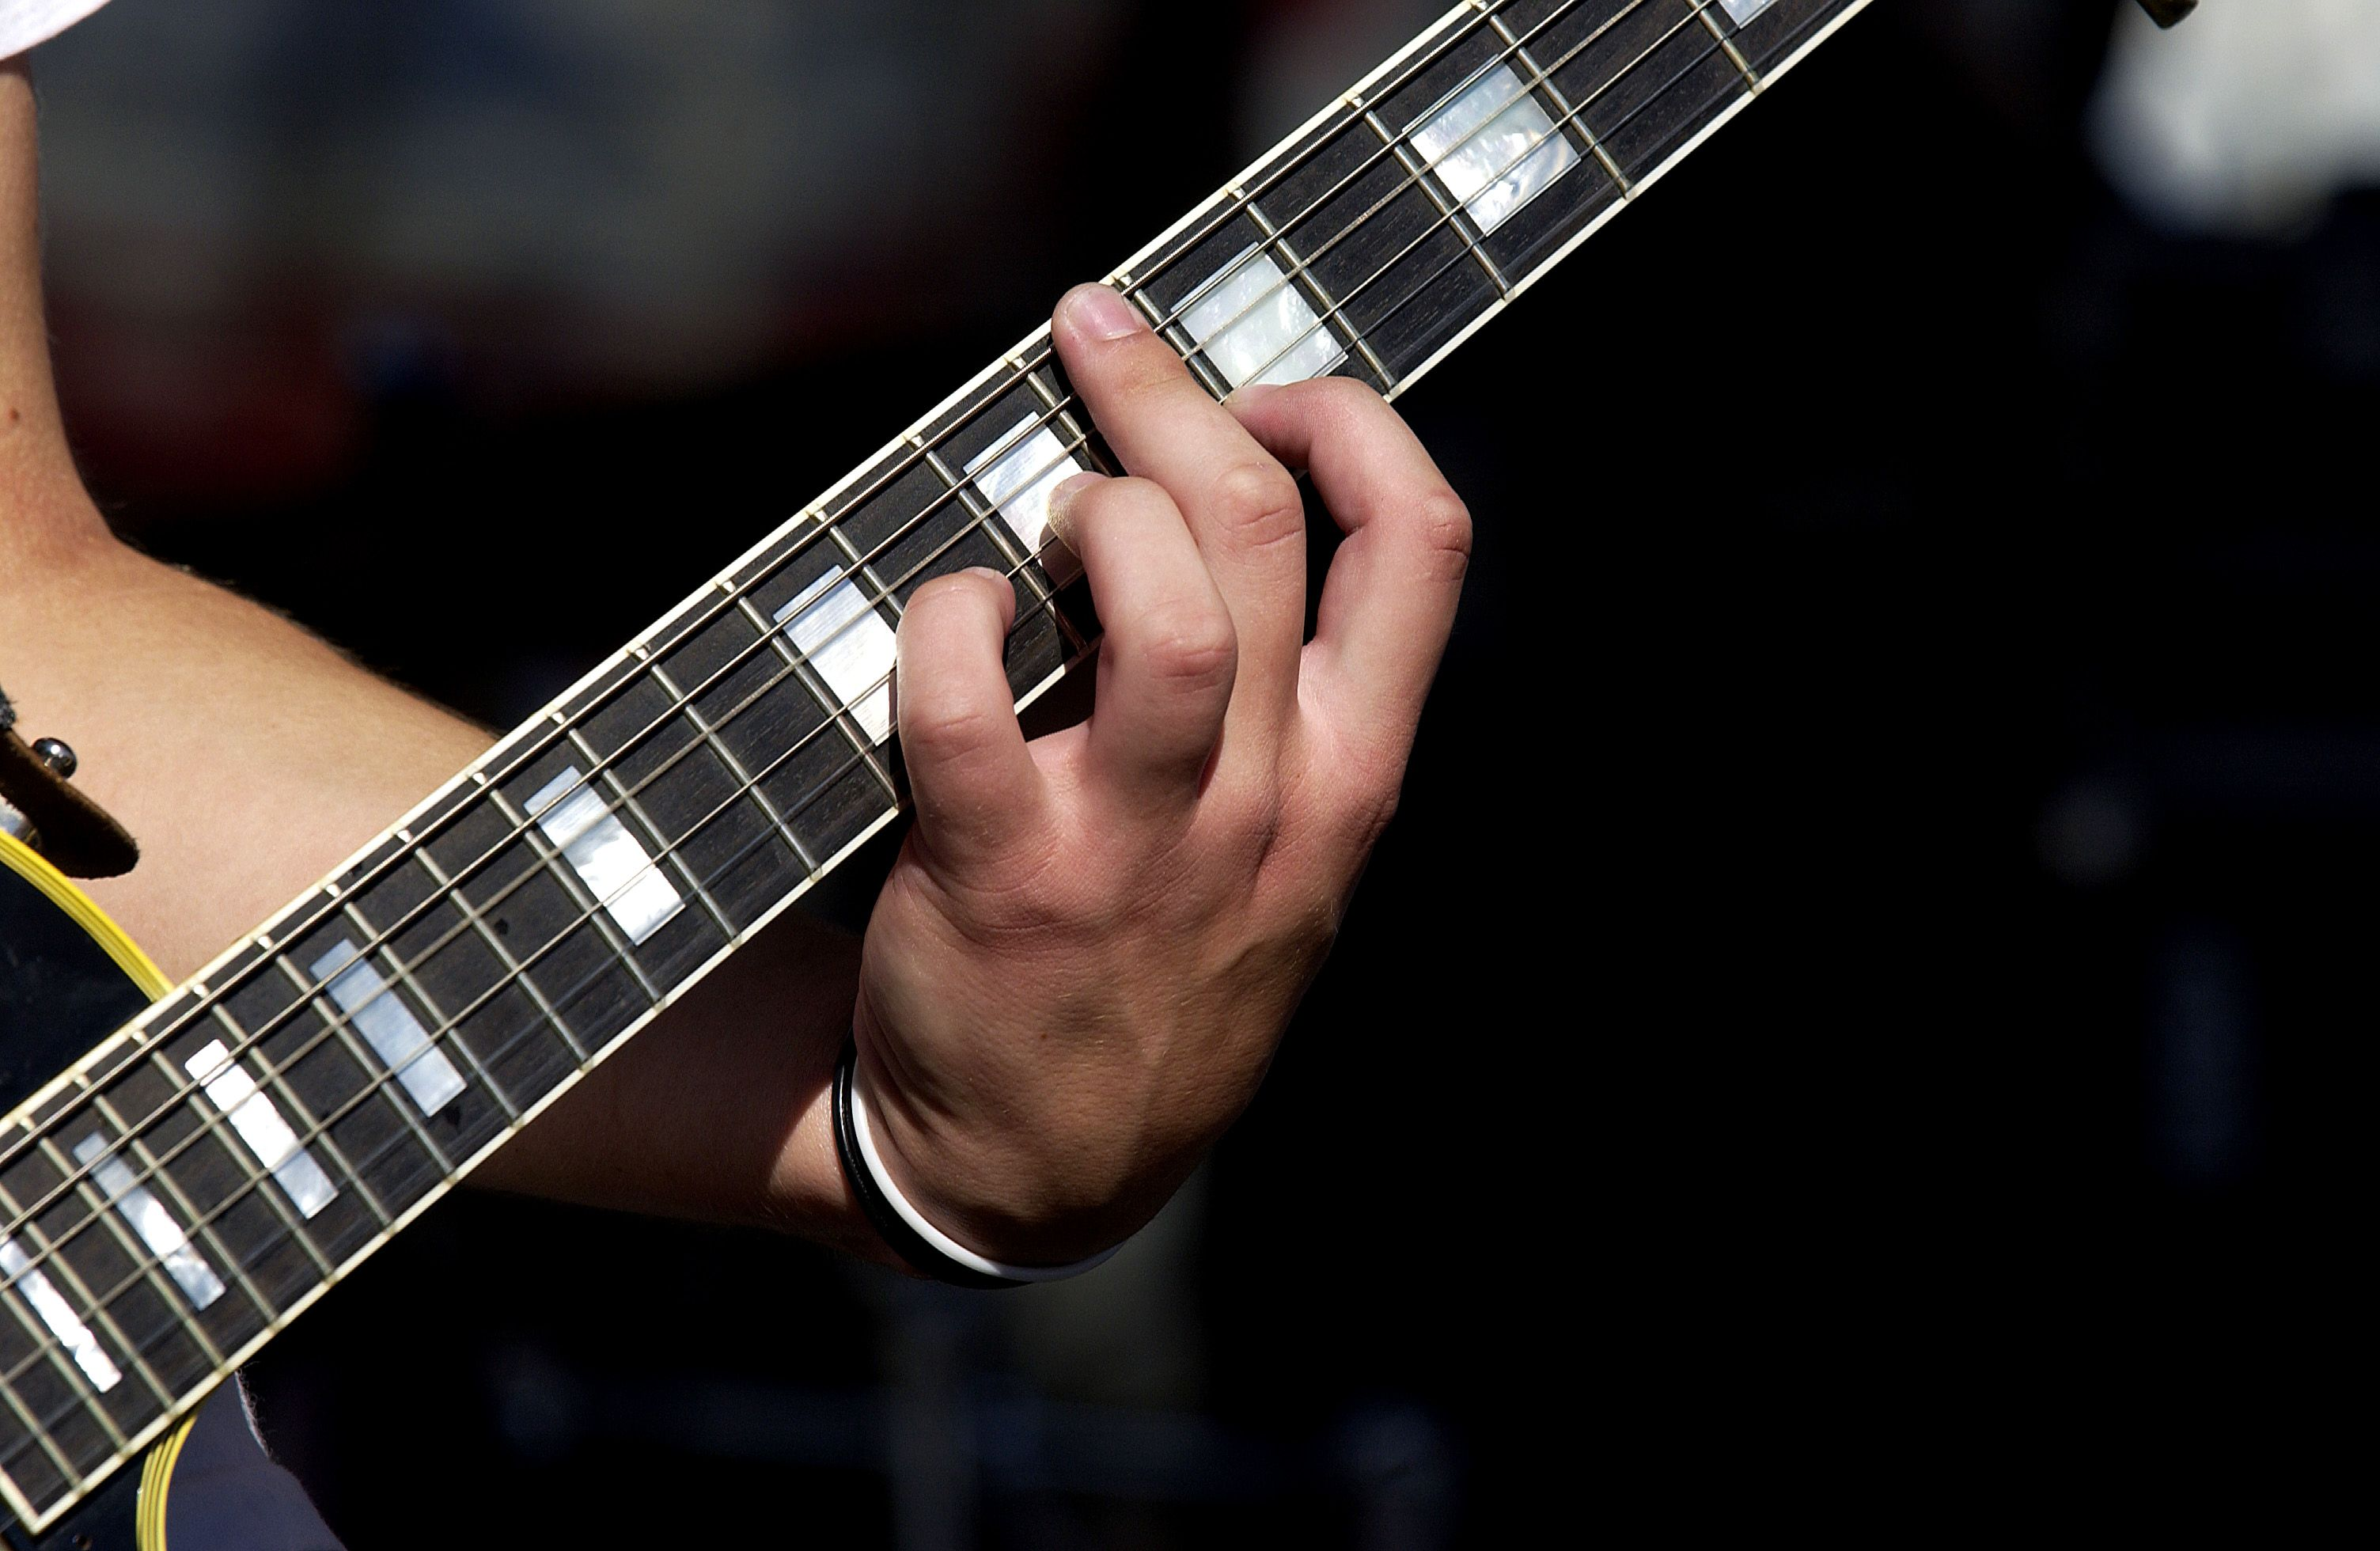 Positions Of The Pentatonic Scale For Guitar This Is A Fingerboard Diagram Open Strings Are Shown On